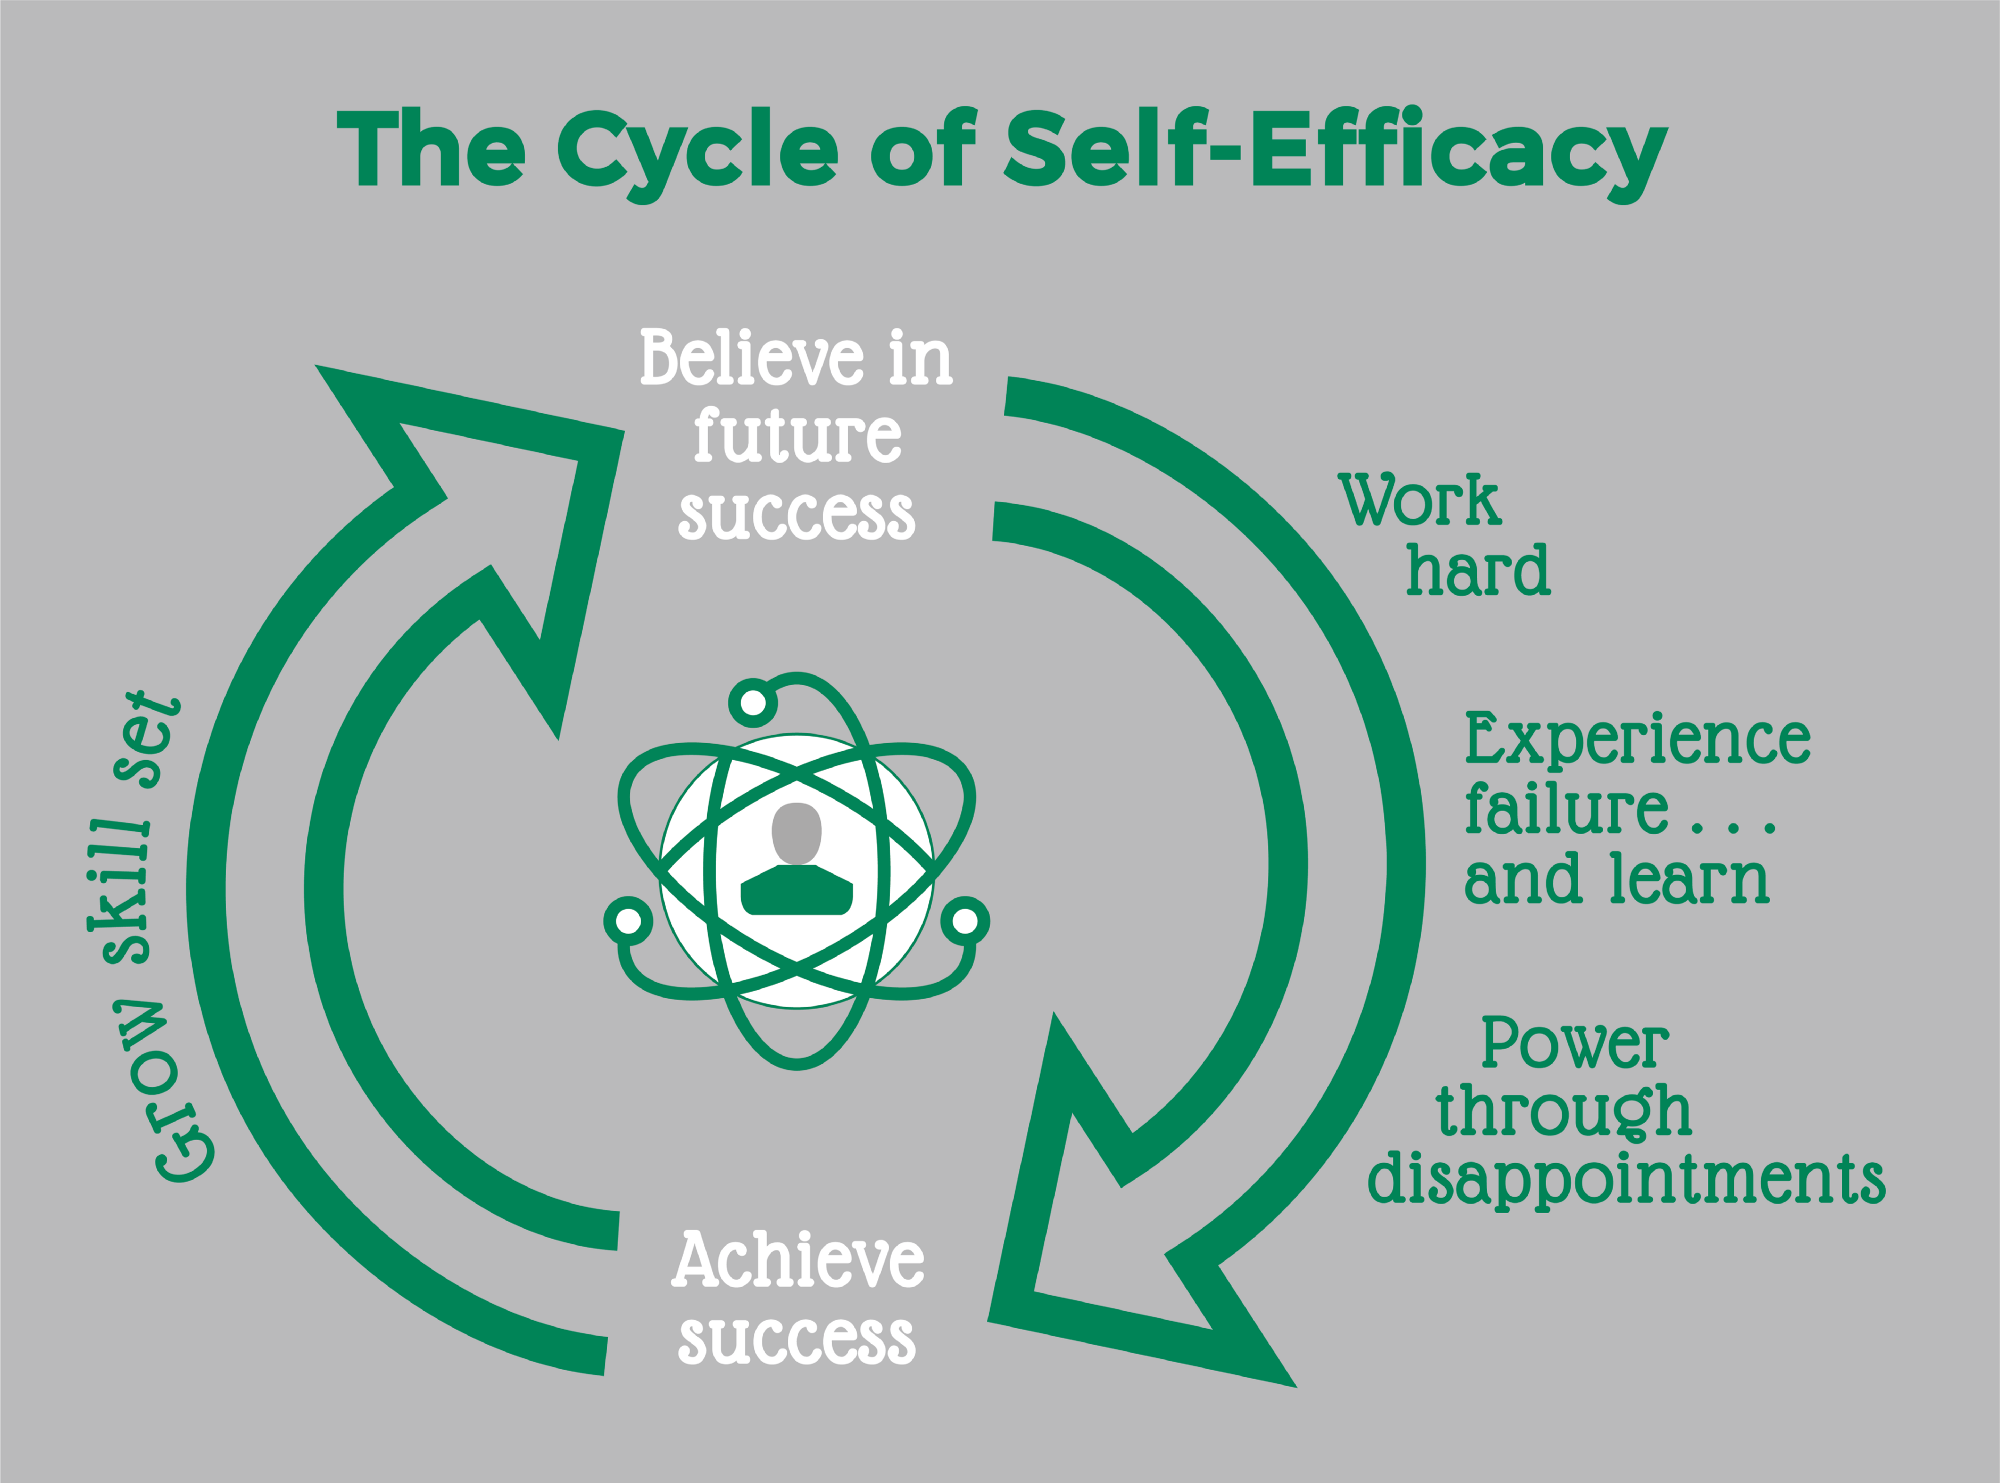 Thatu0027s Why JA Is So Focused On Measuring And Tracking Self Efficacy,  Difficult As It Is To Both Understand And Measure. With Well Over 100  Million JA Alumni ...